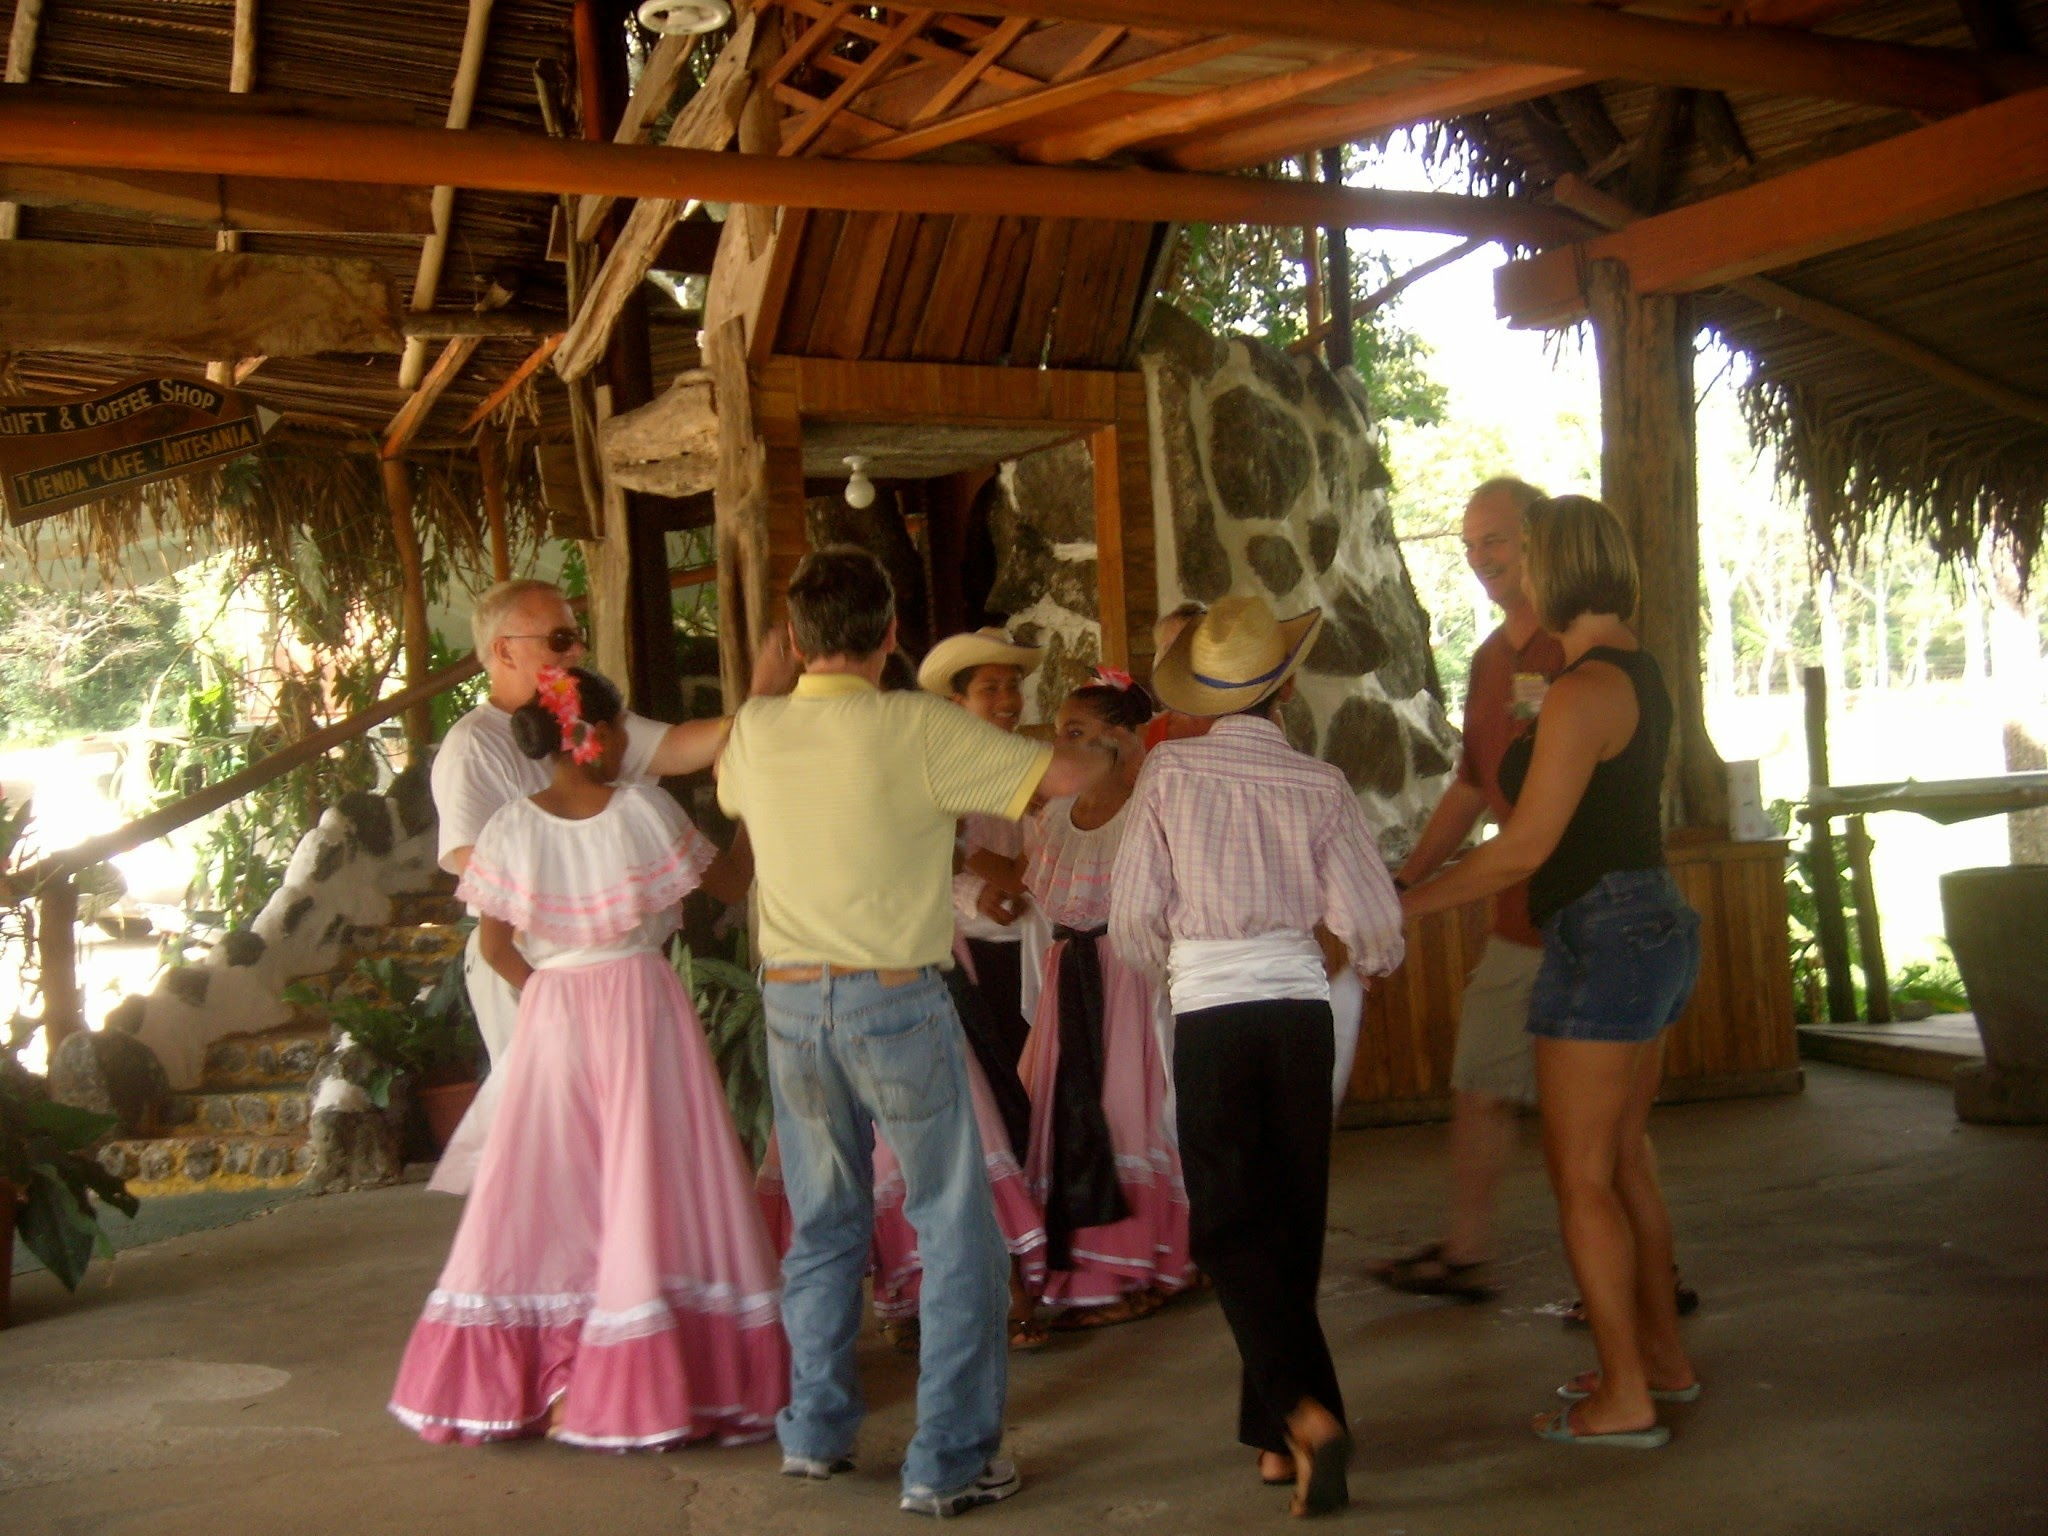 Learning a traditional dance